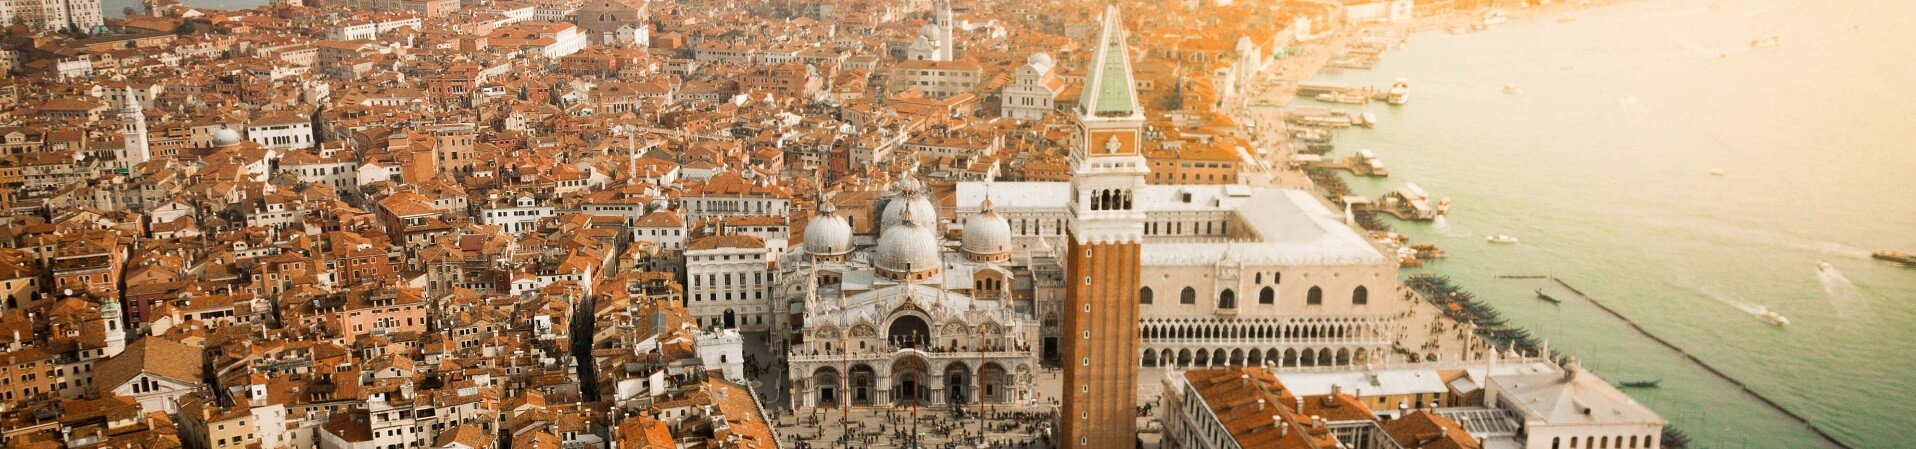 What should you not miss in Venice?